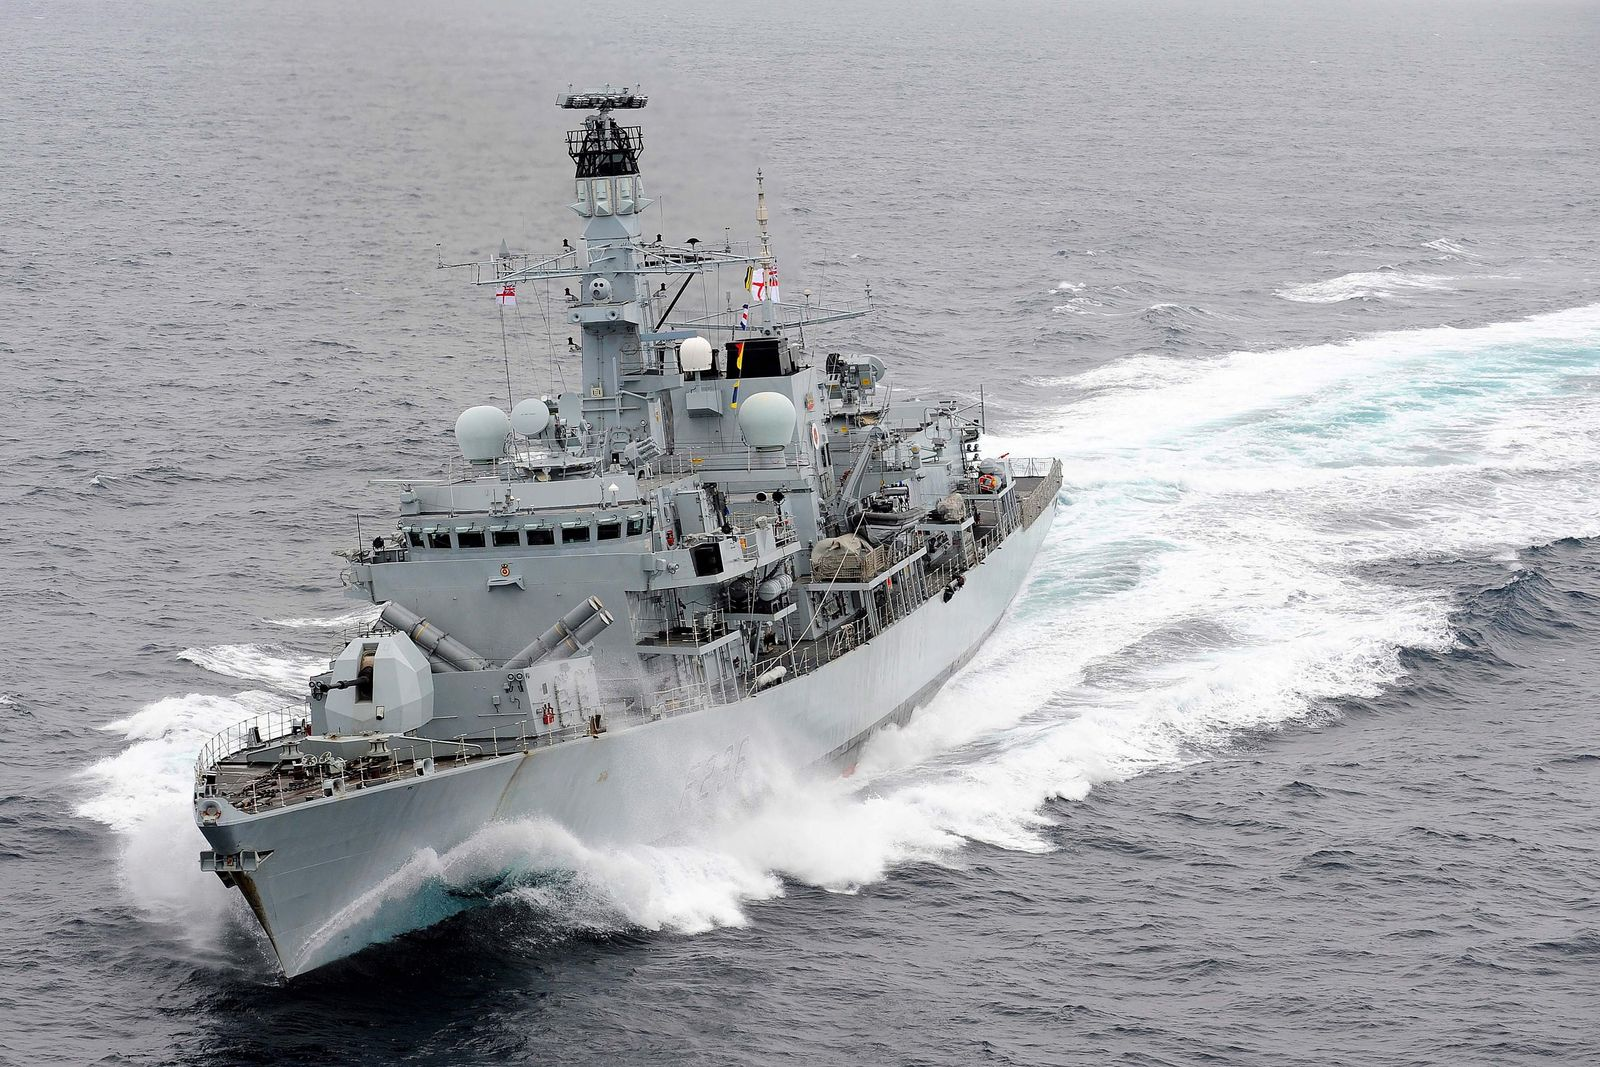 HMS Westminster readying for Operation Cougar